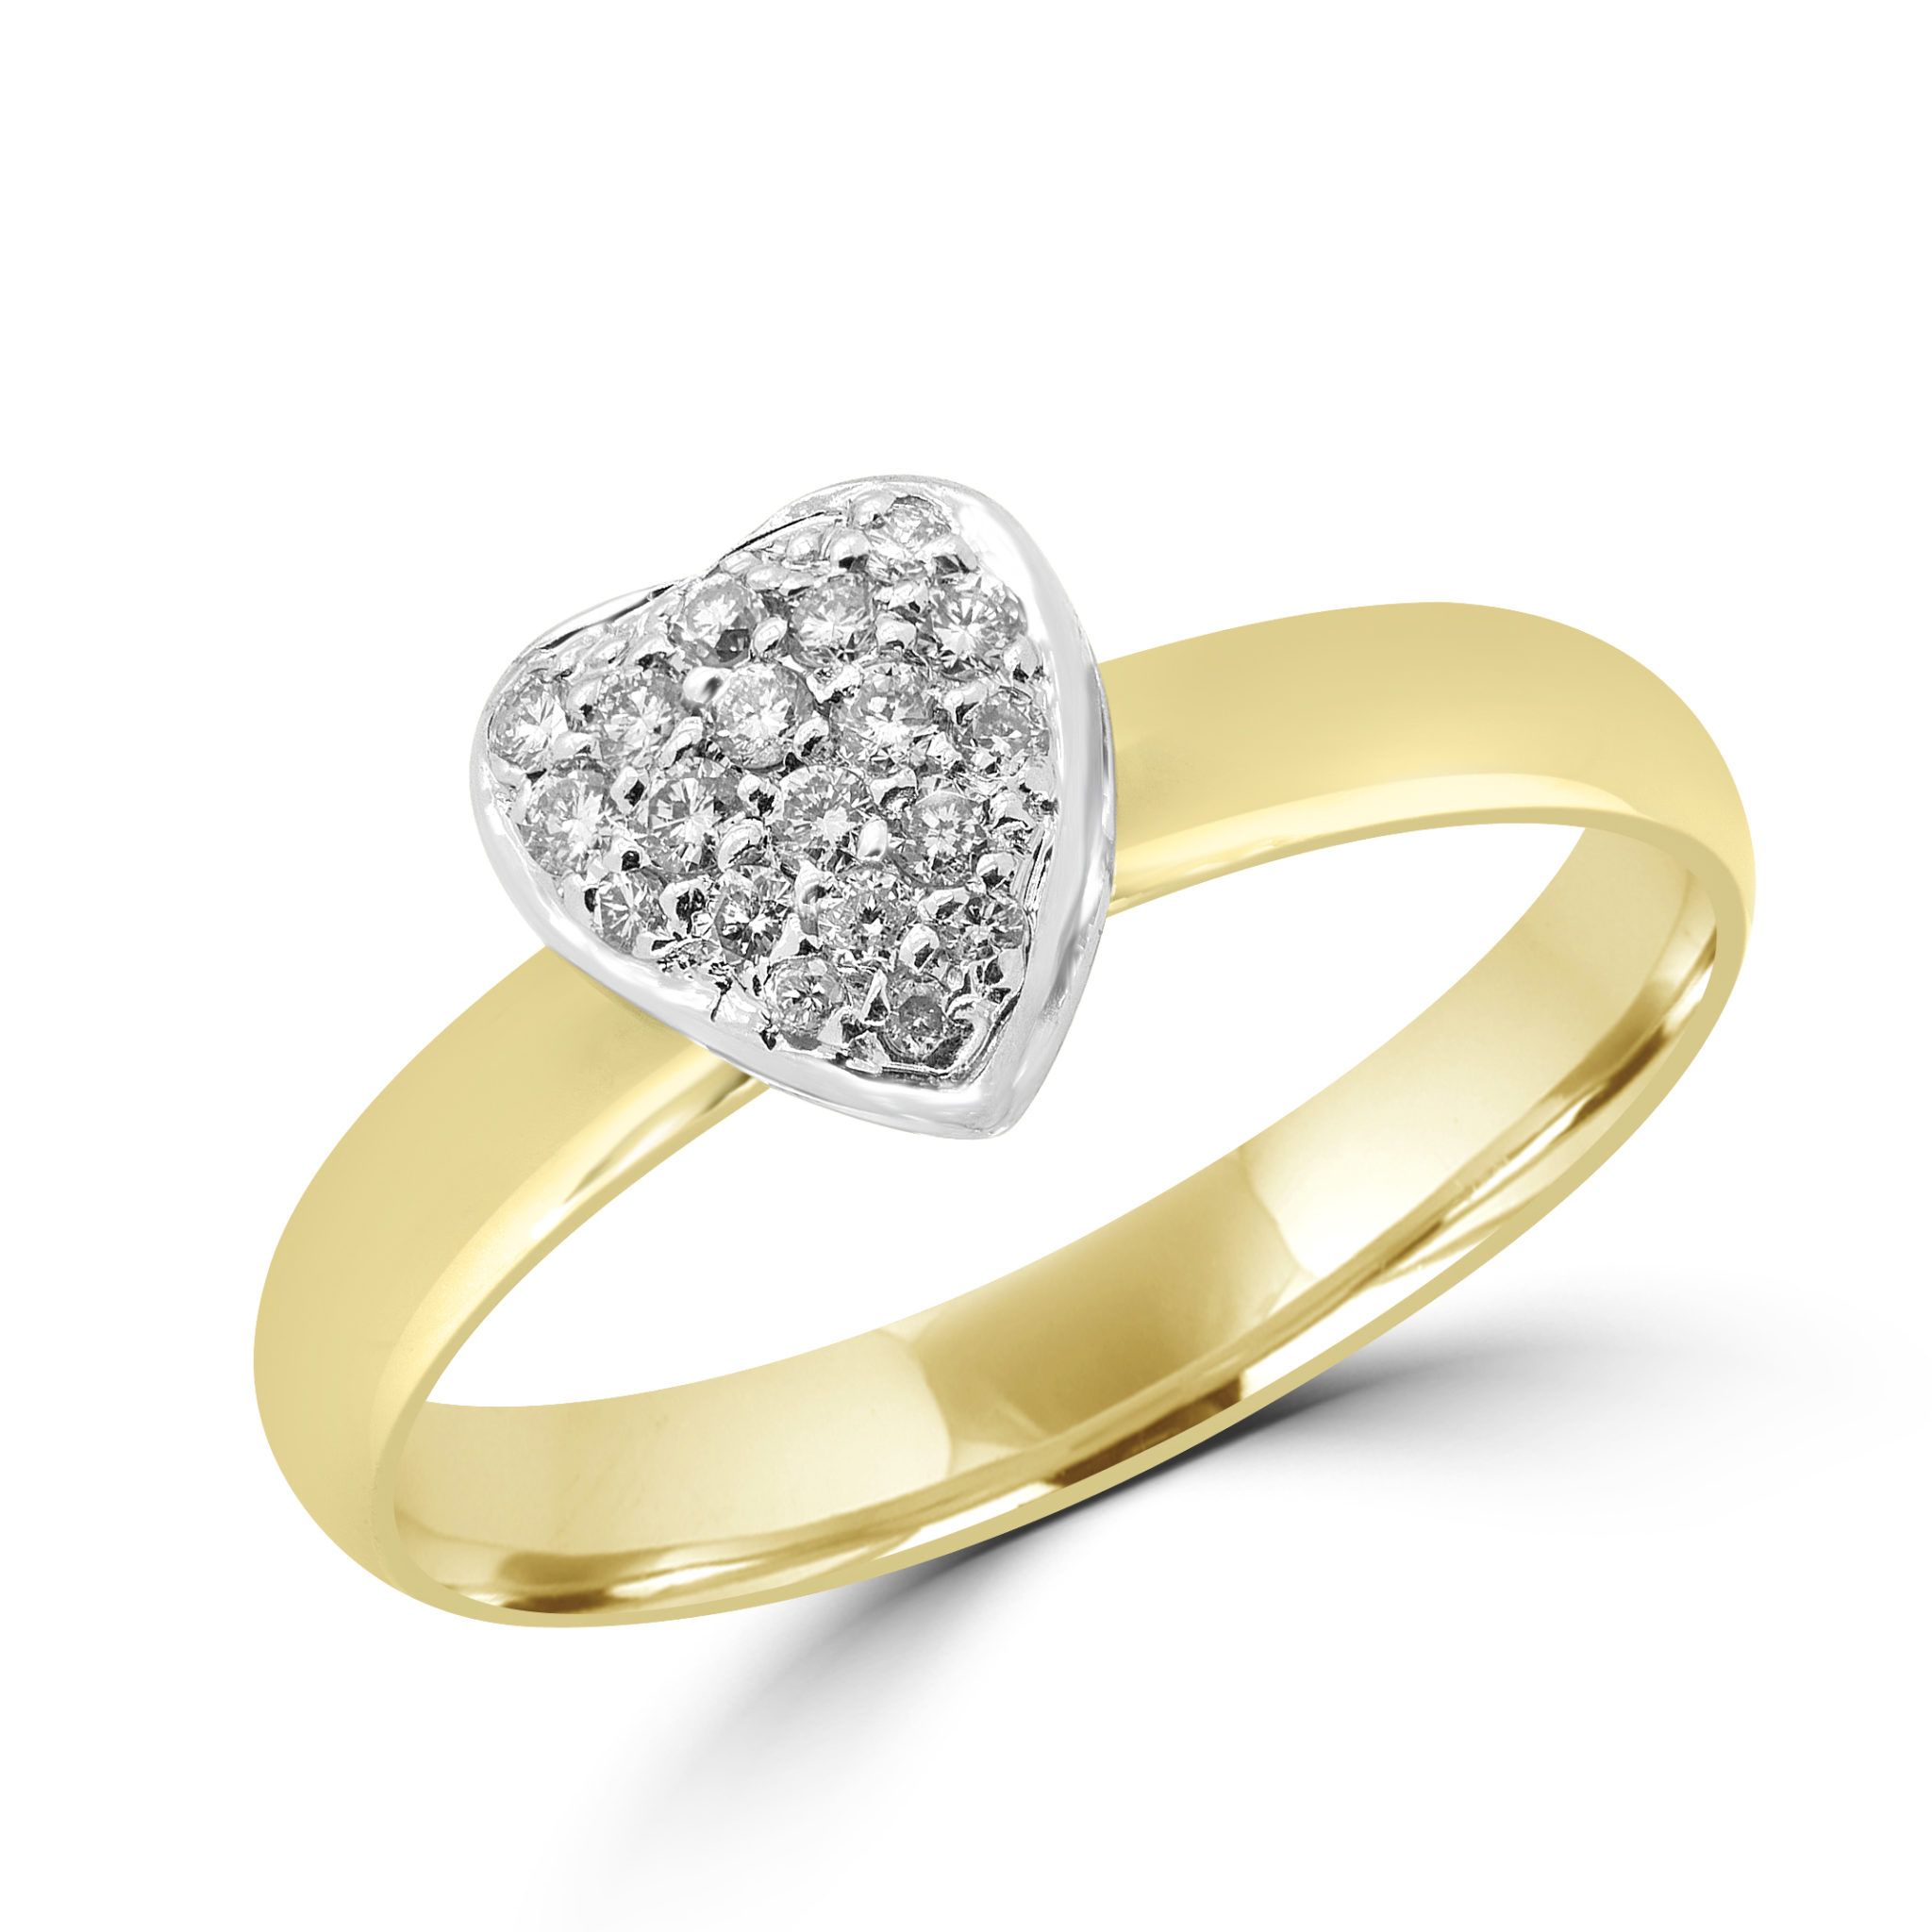 18k heart diamond promise ring 0.14 ct yellow and white gold